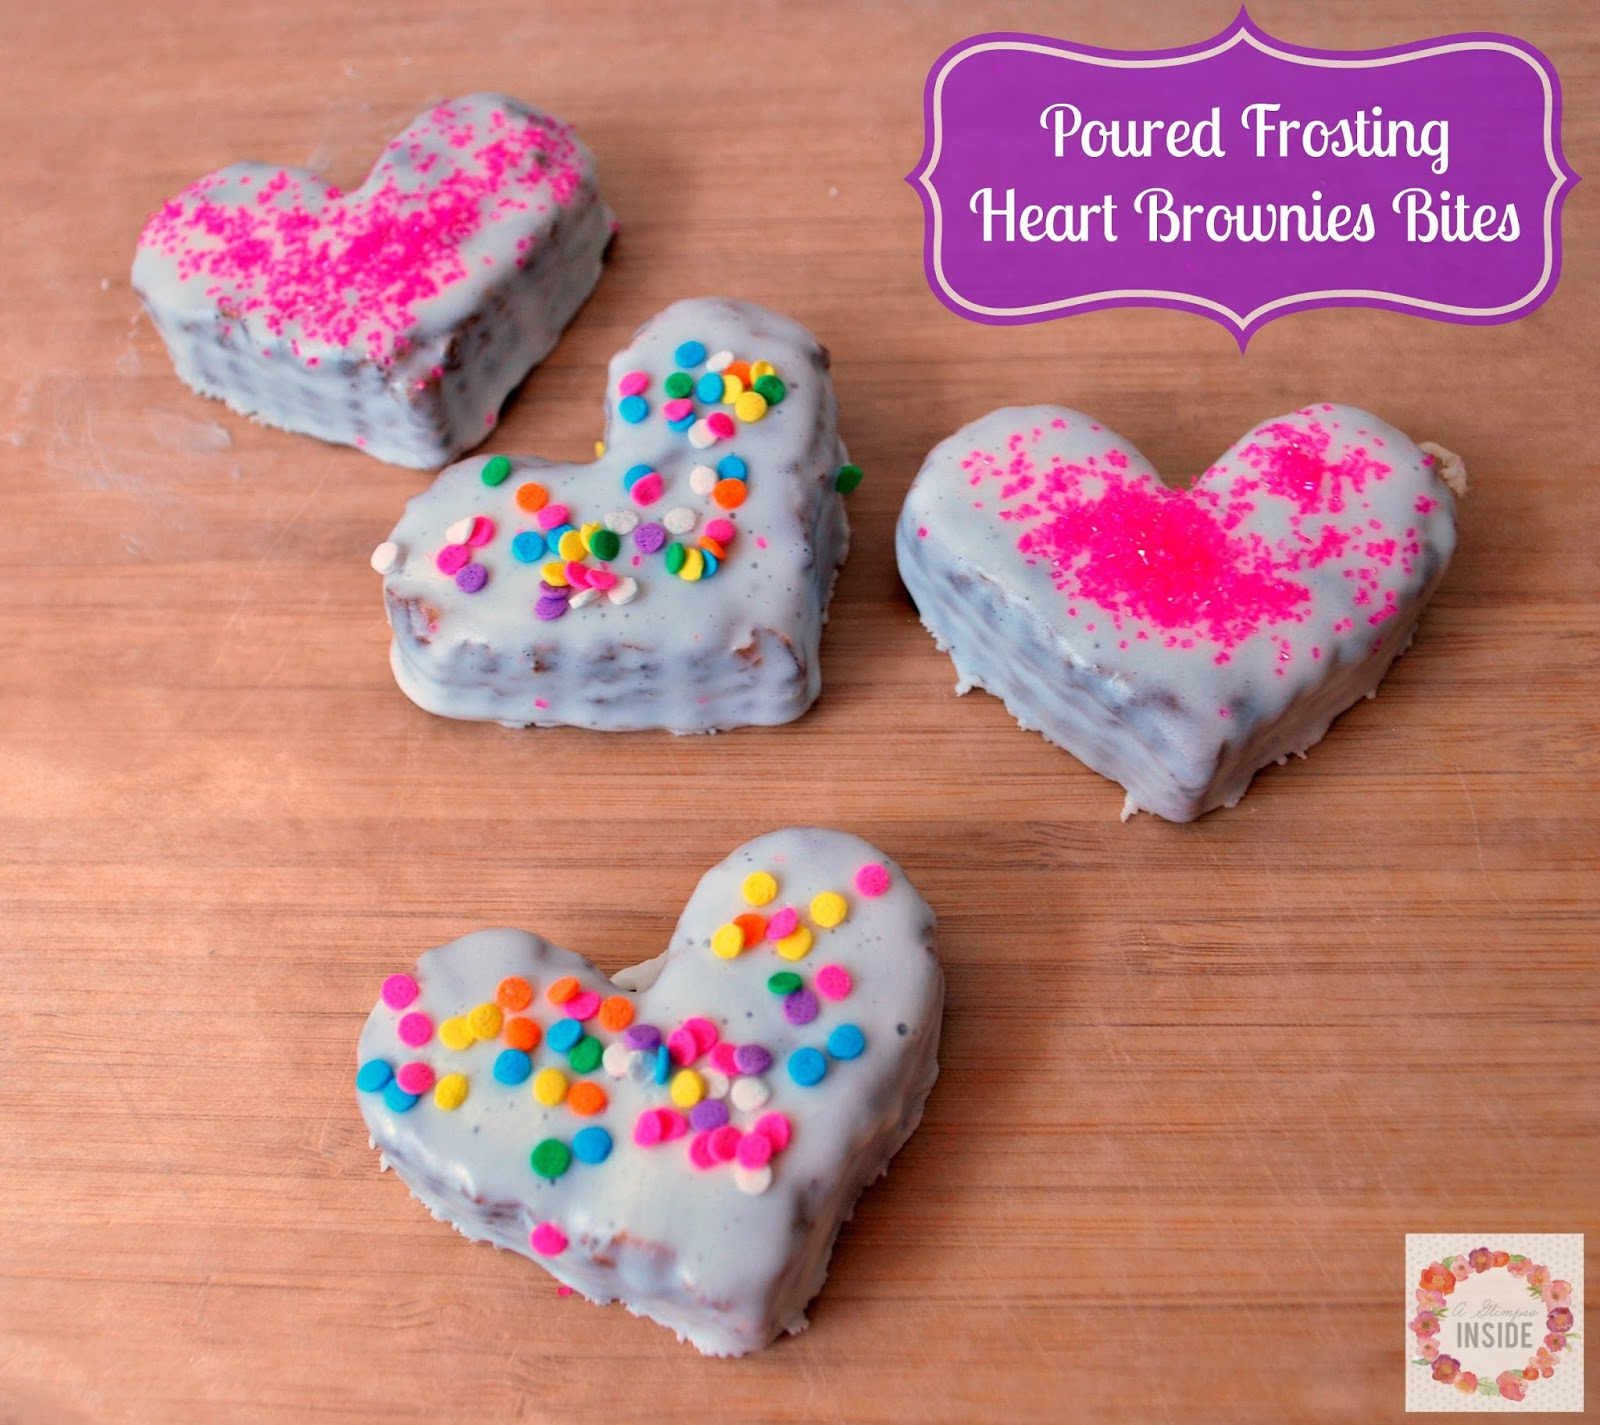 http://www.aglimpseinsideblog.com/2016/02/poured-frosting-heart-brownie-bites.html